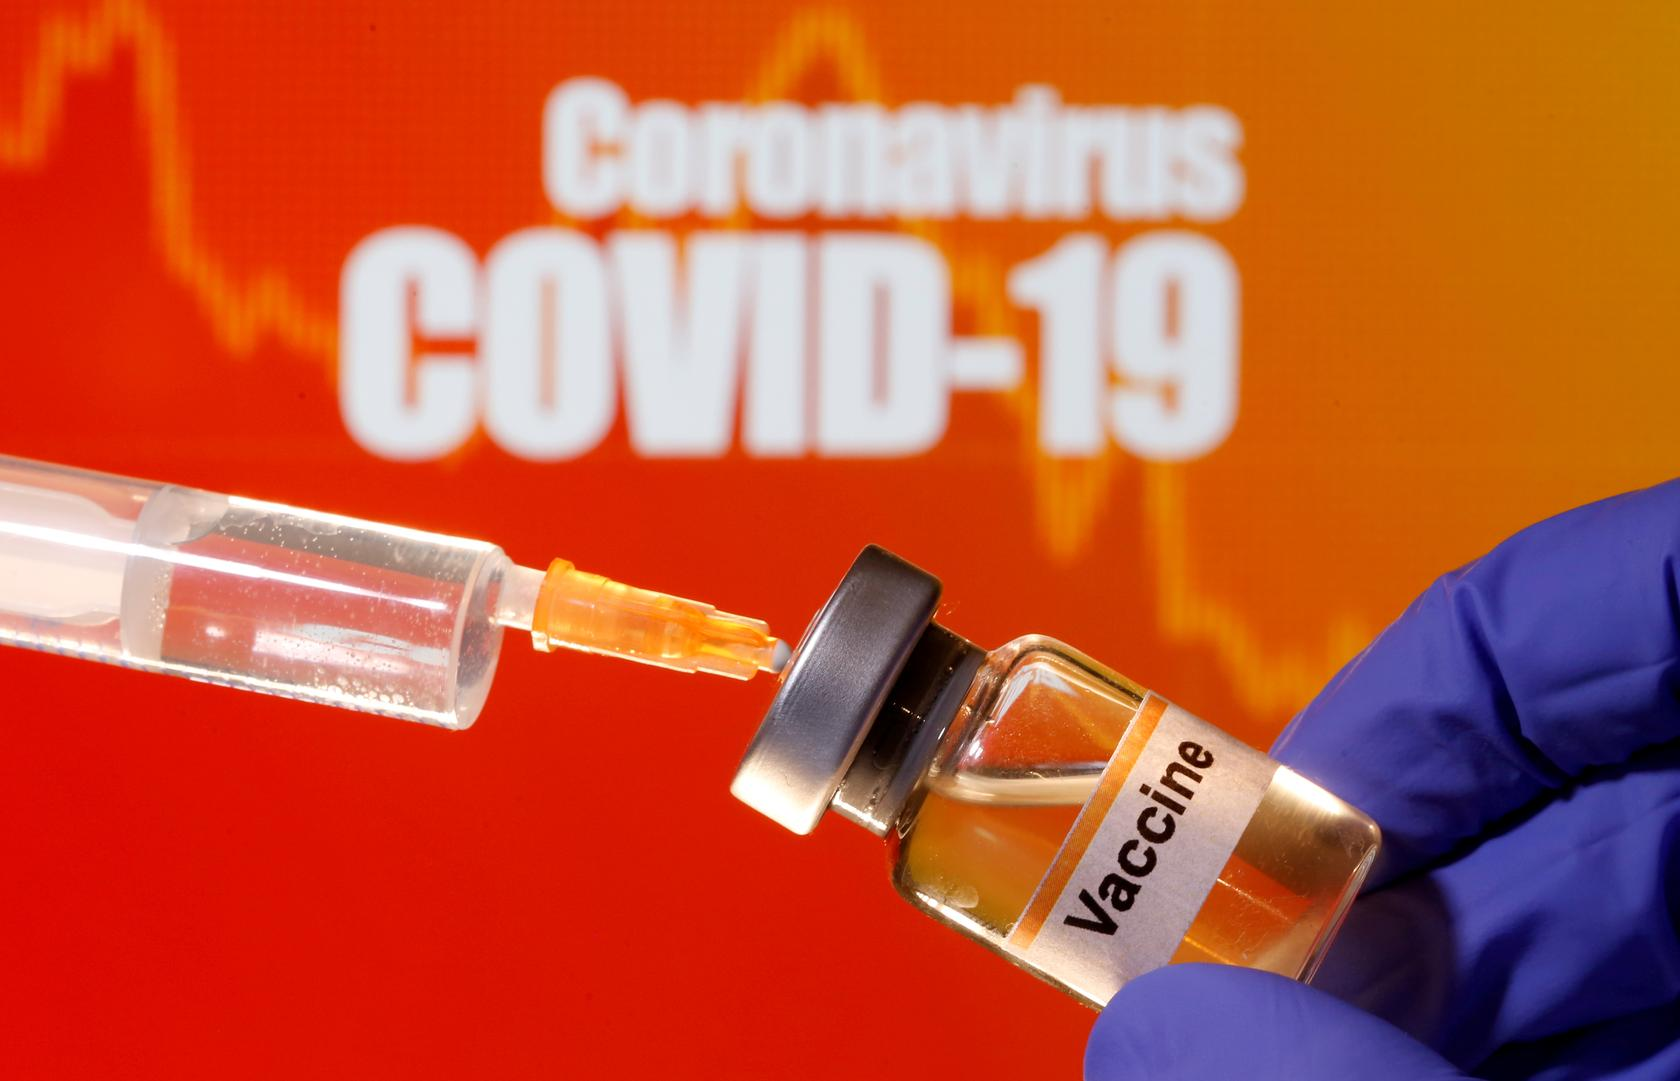 Lebanon is expected to receive its first batch of coronavirus vaccines in early 2021.